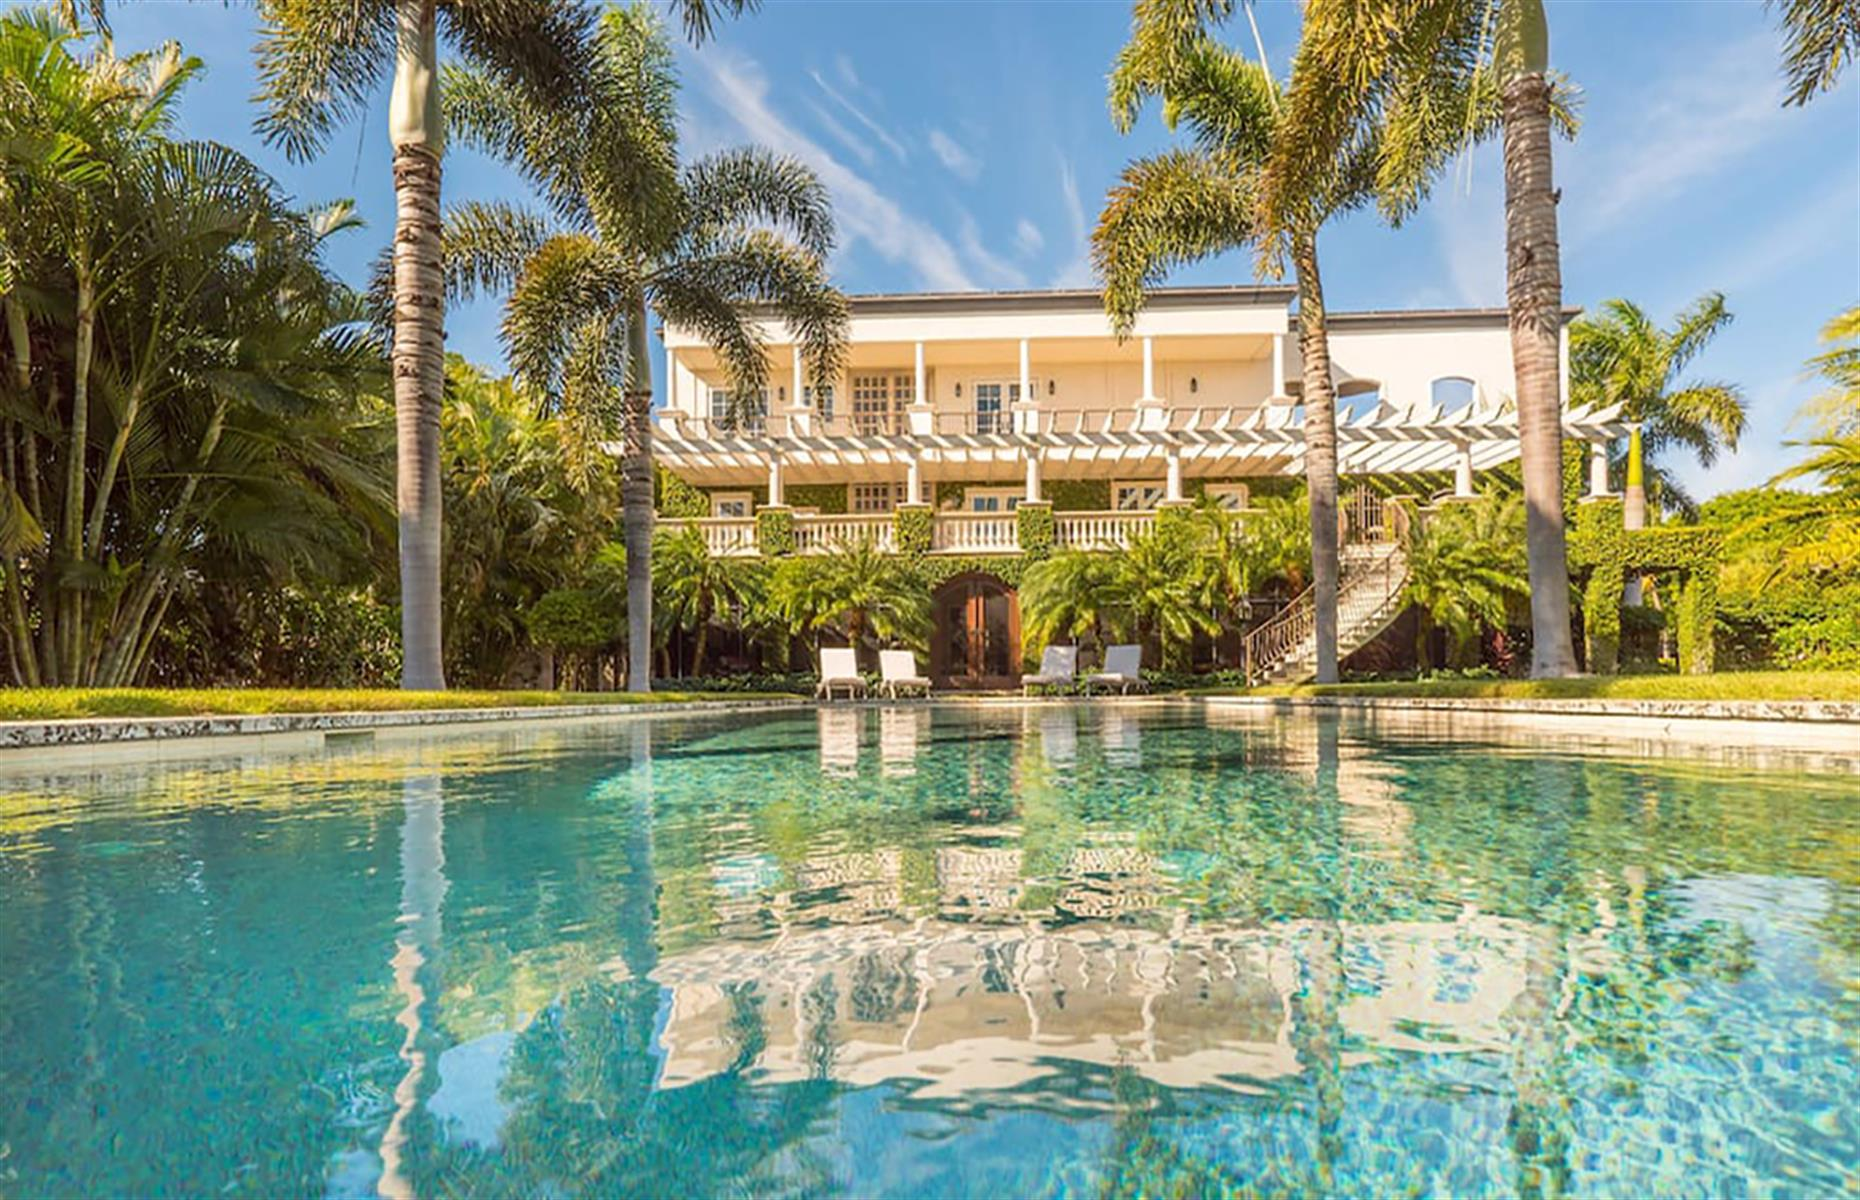 Slide 11 of 52: Make the most of your time in the Floridian sunshine at the opulent Boca Grande Island Estate. The sumptuous five-bedroom home is surrounded by tropical gardens, creating a secluded oasis for winding down by the pool. If you prefer a more active vacation, there's private access to the beach, plus fishing equipment, snorkeling gear and bicycles are free to use.